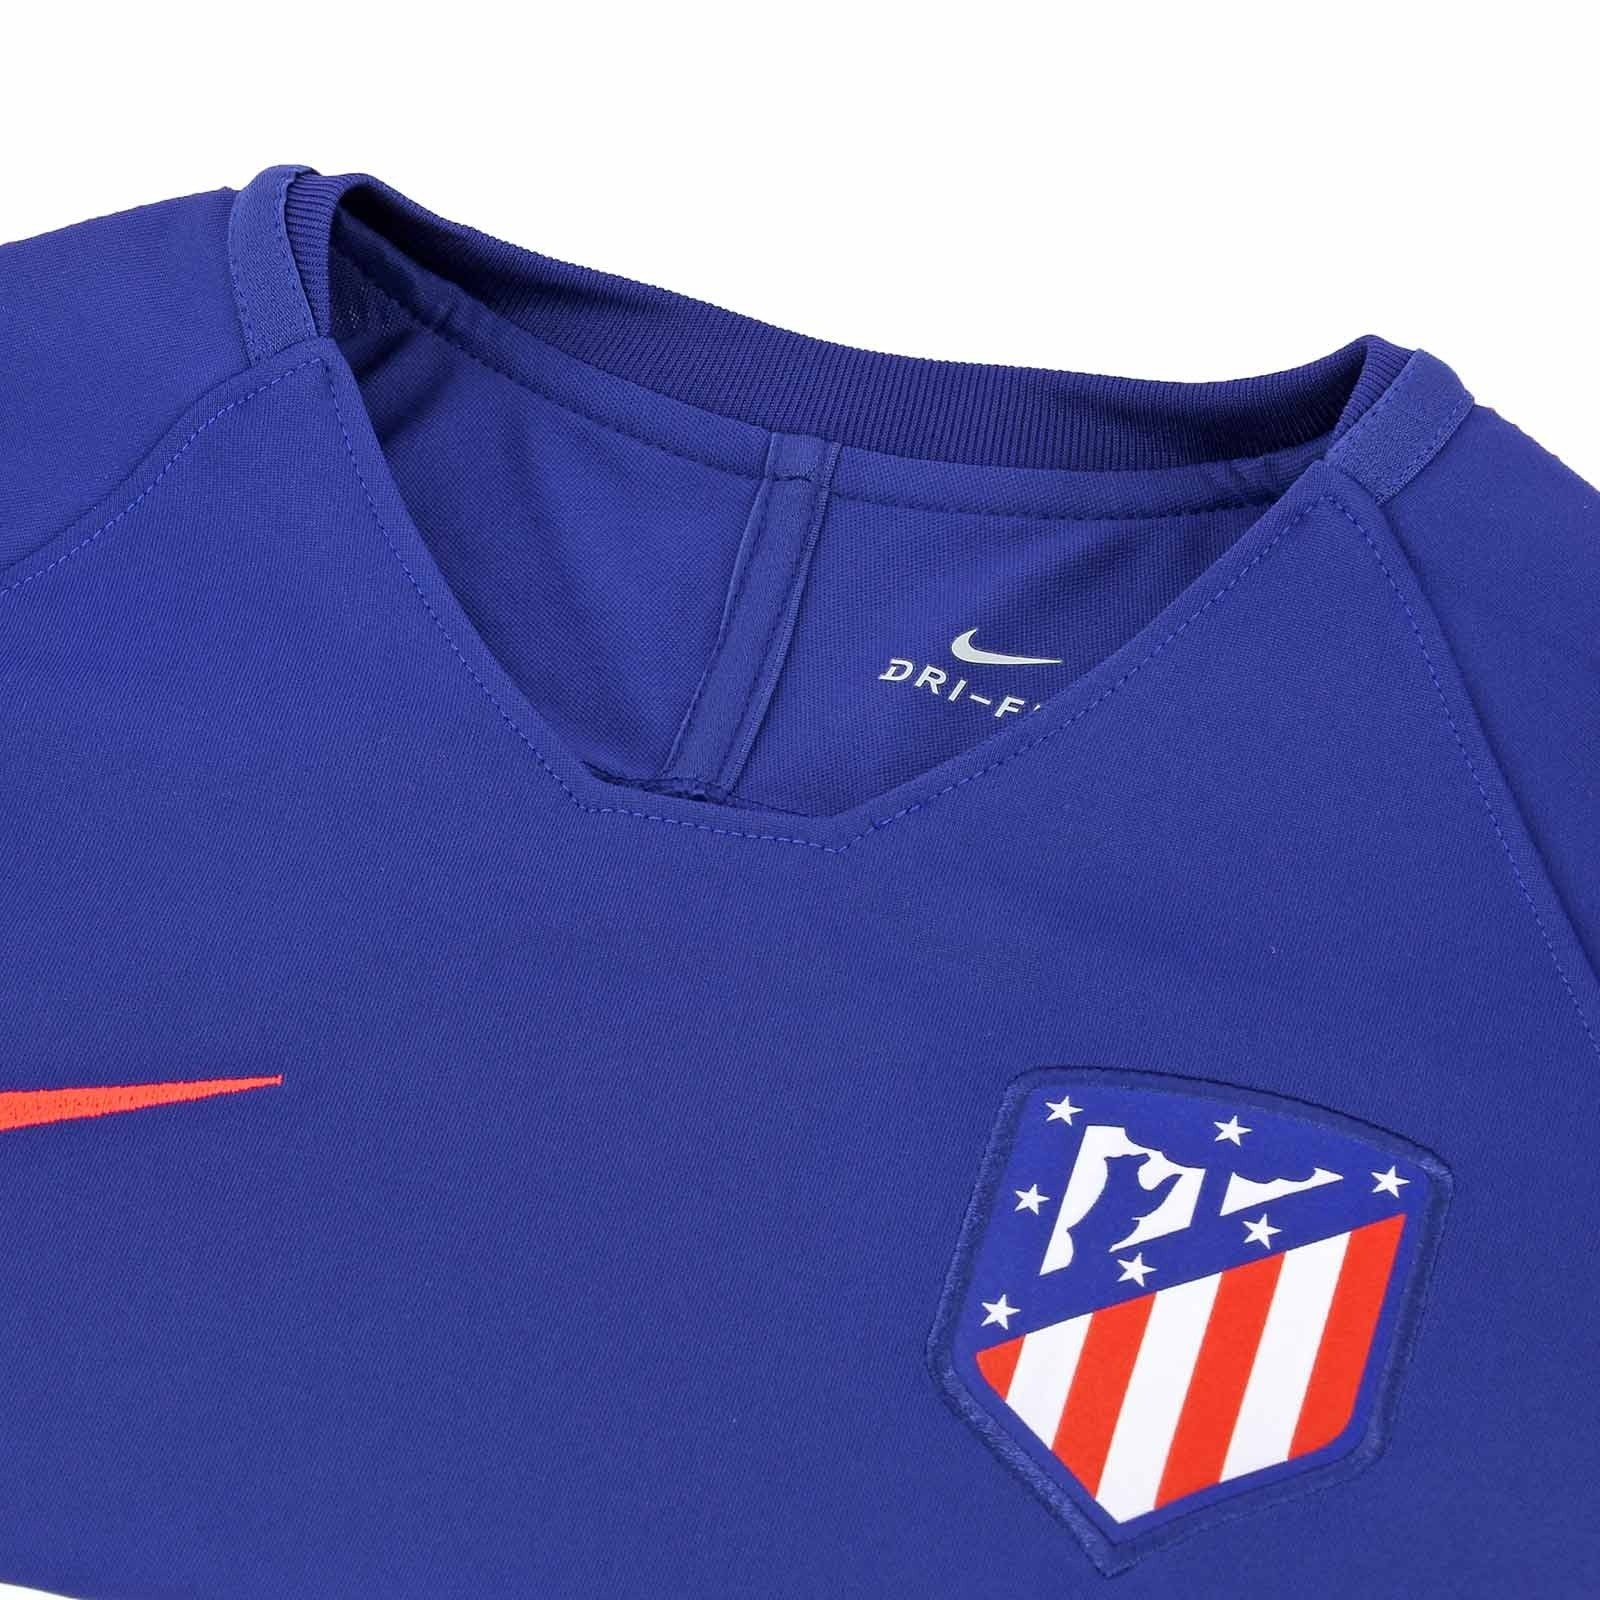 Mens Nike Breathe Atletico Madrid Squad Shirt.   919949